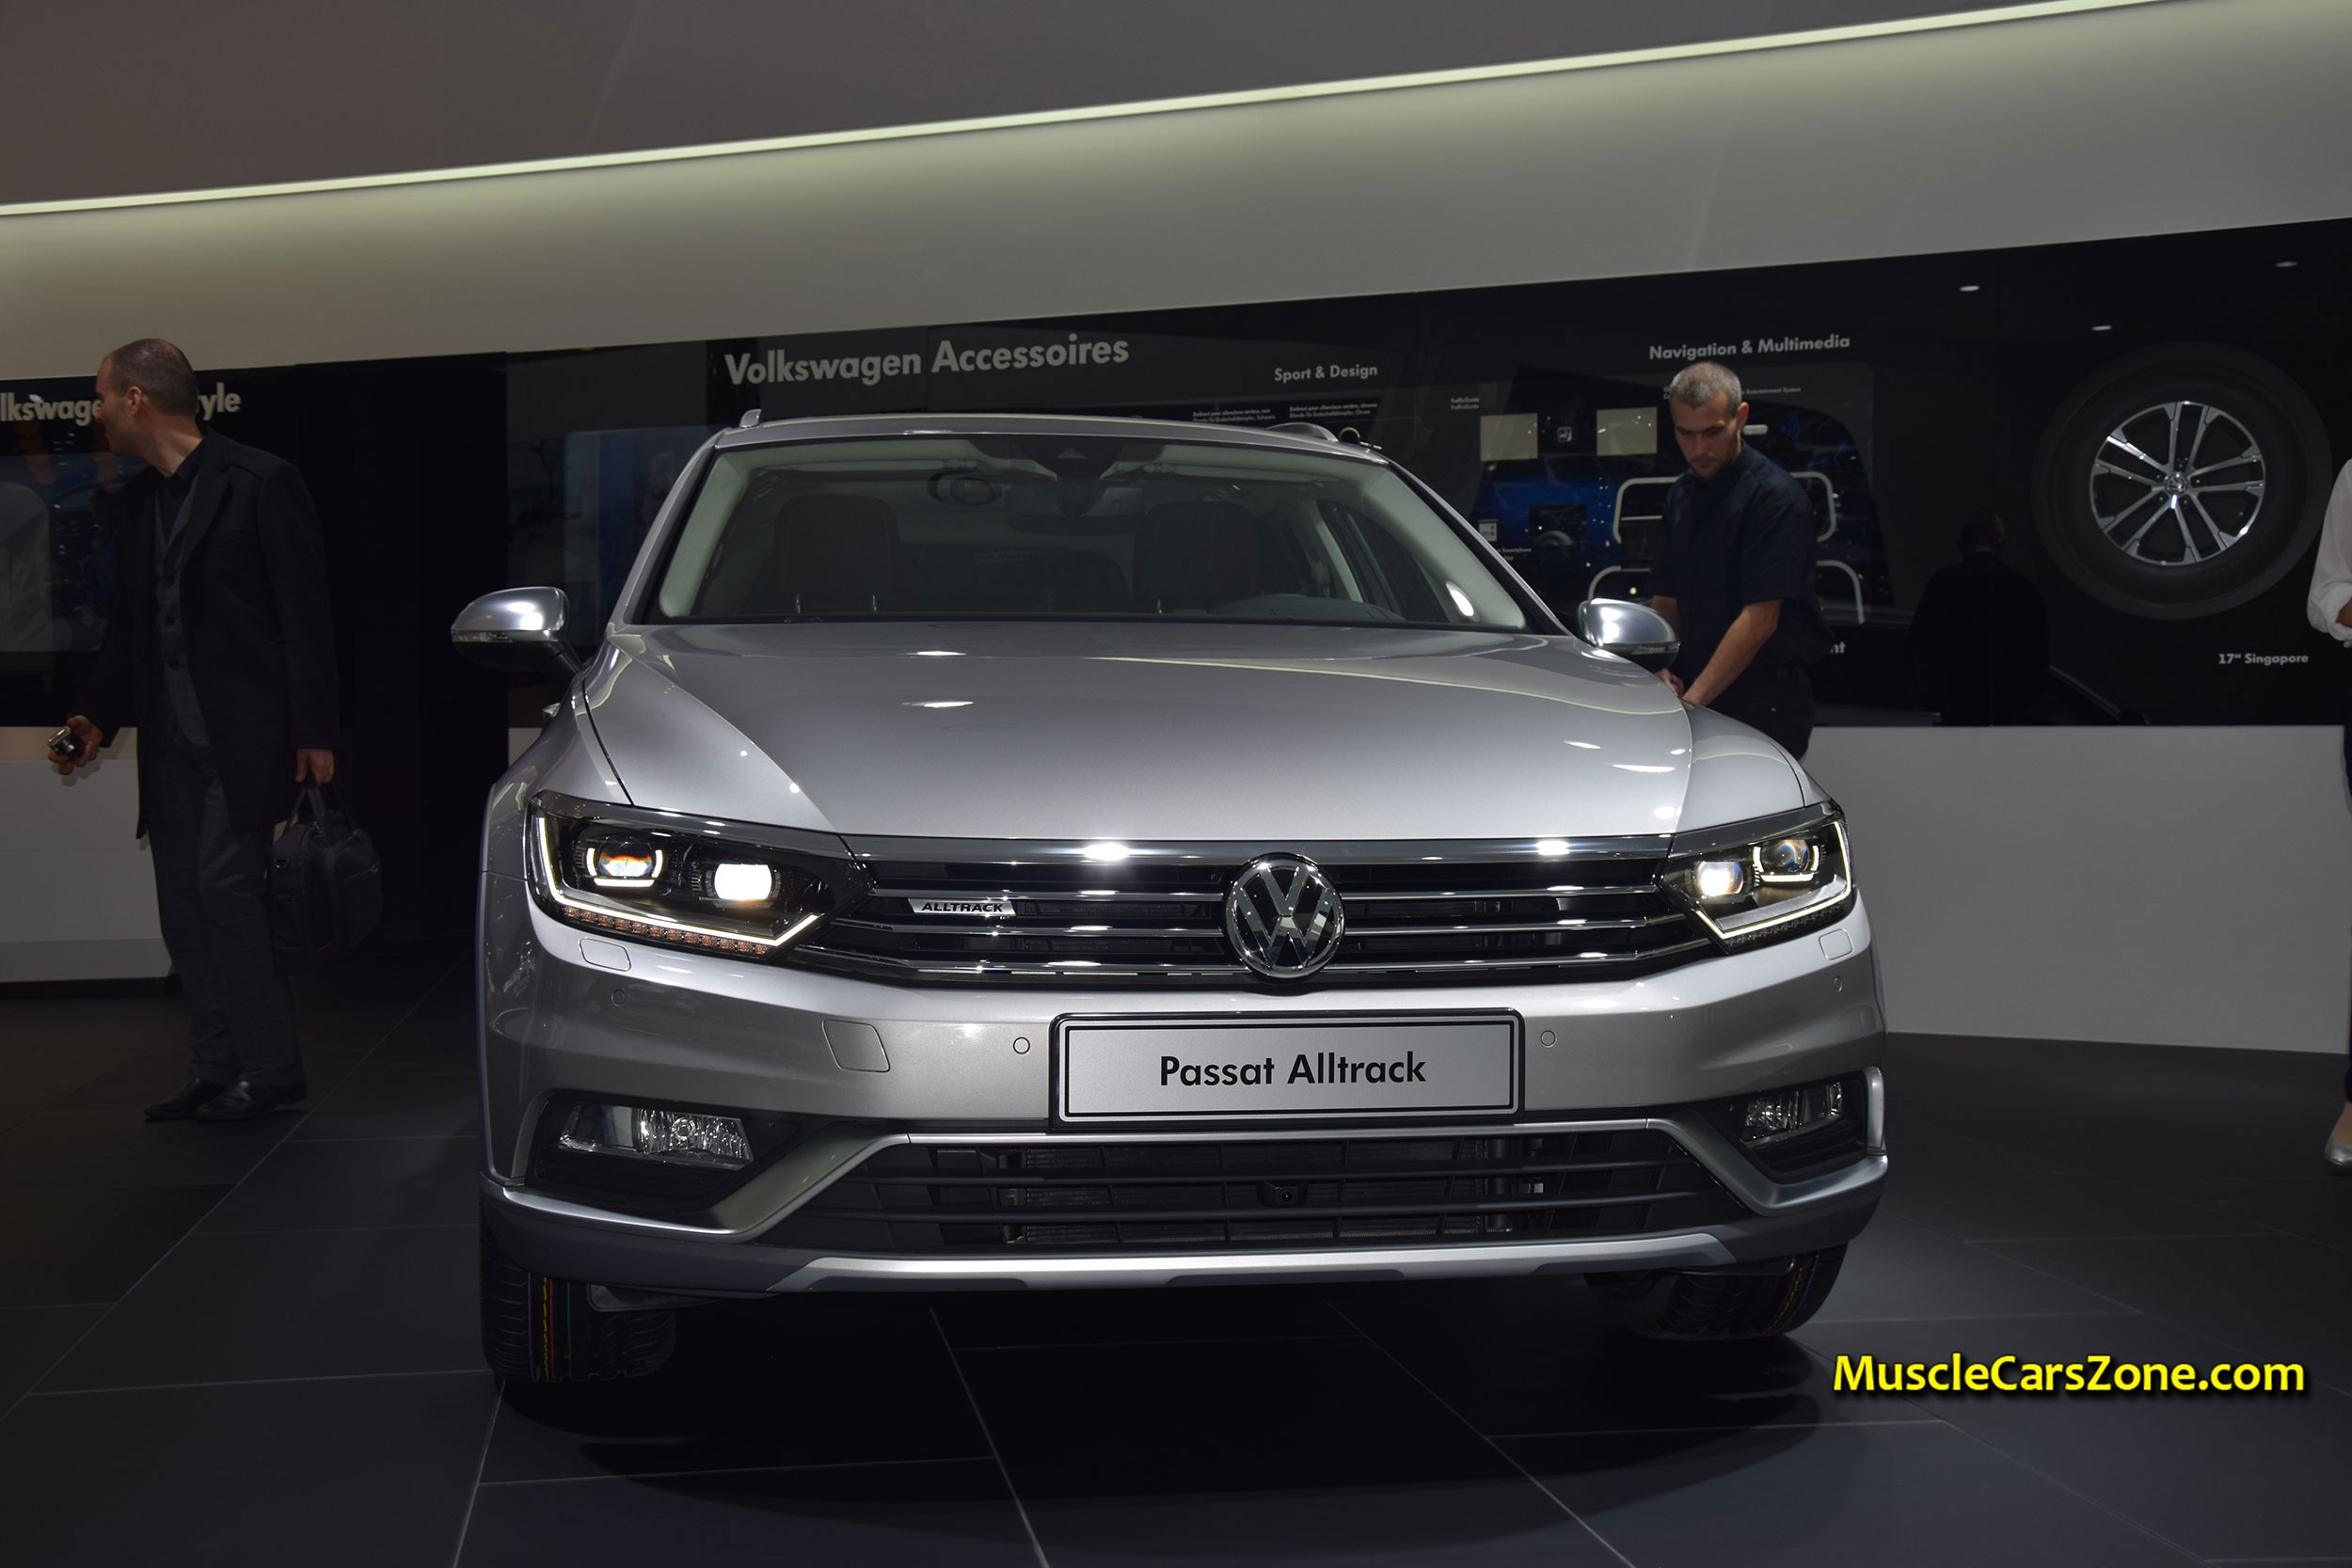 exclusive video photos 2015 vw passat alltrack revealed geneva motor show see it first. Black Bedroom Furniture Sets. Home Design Ideas